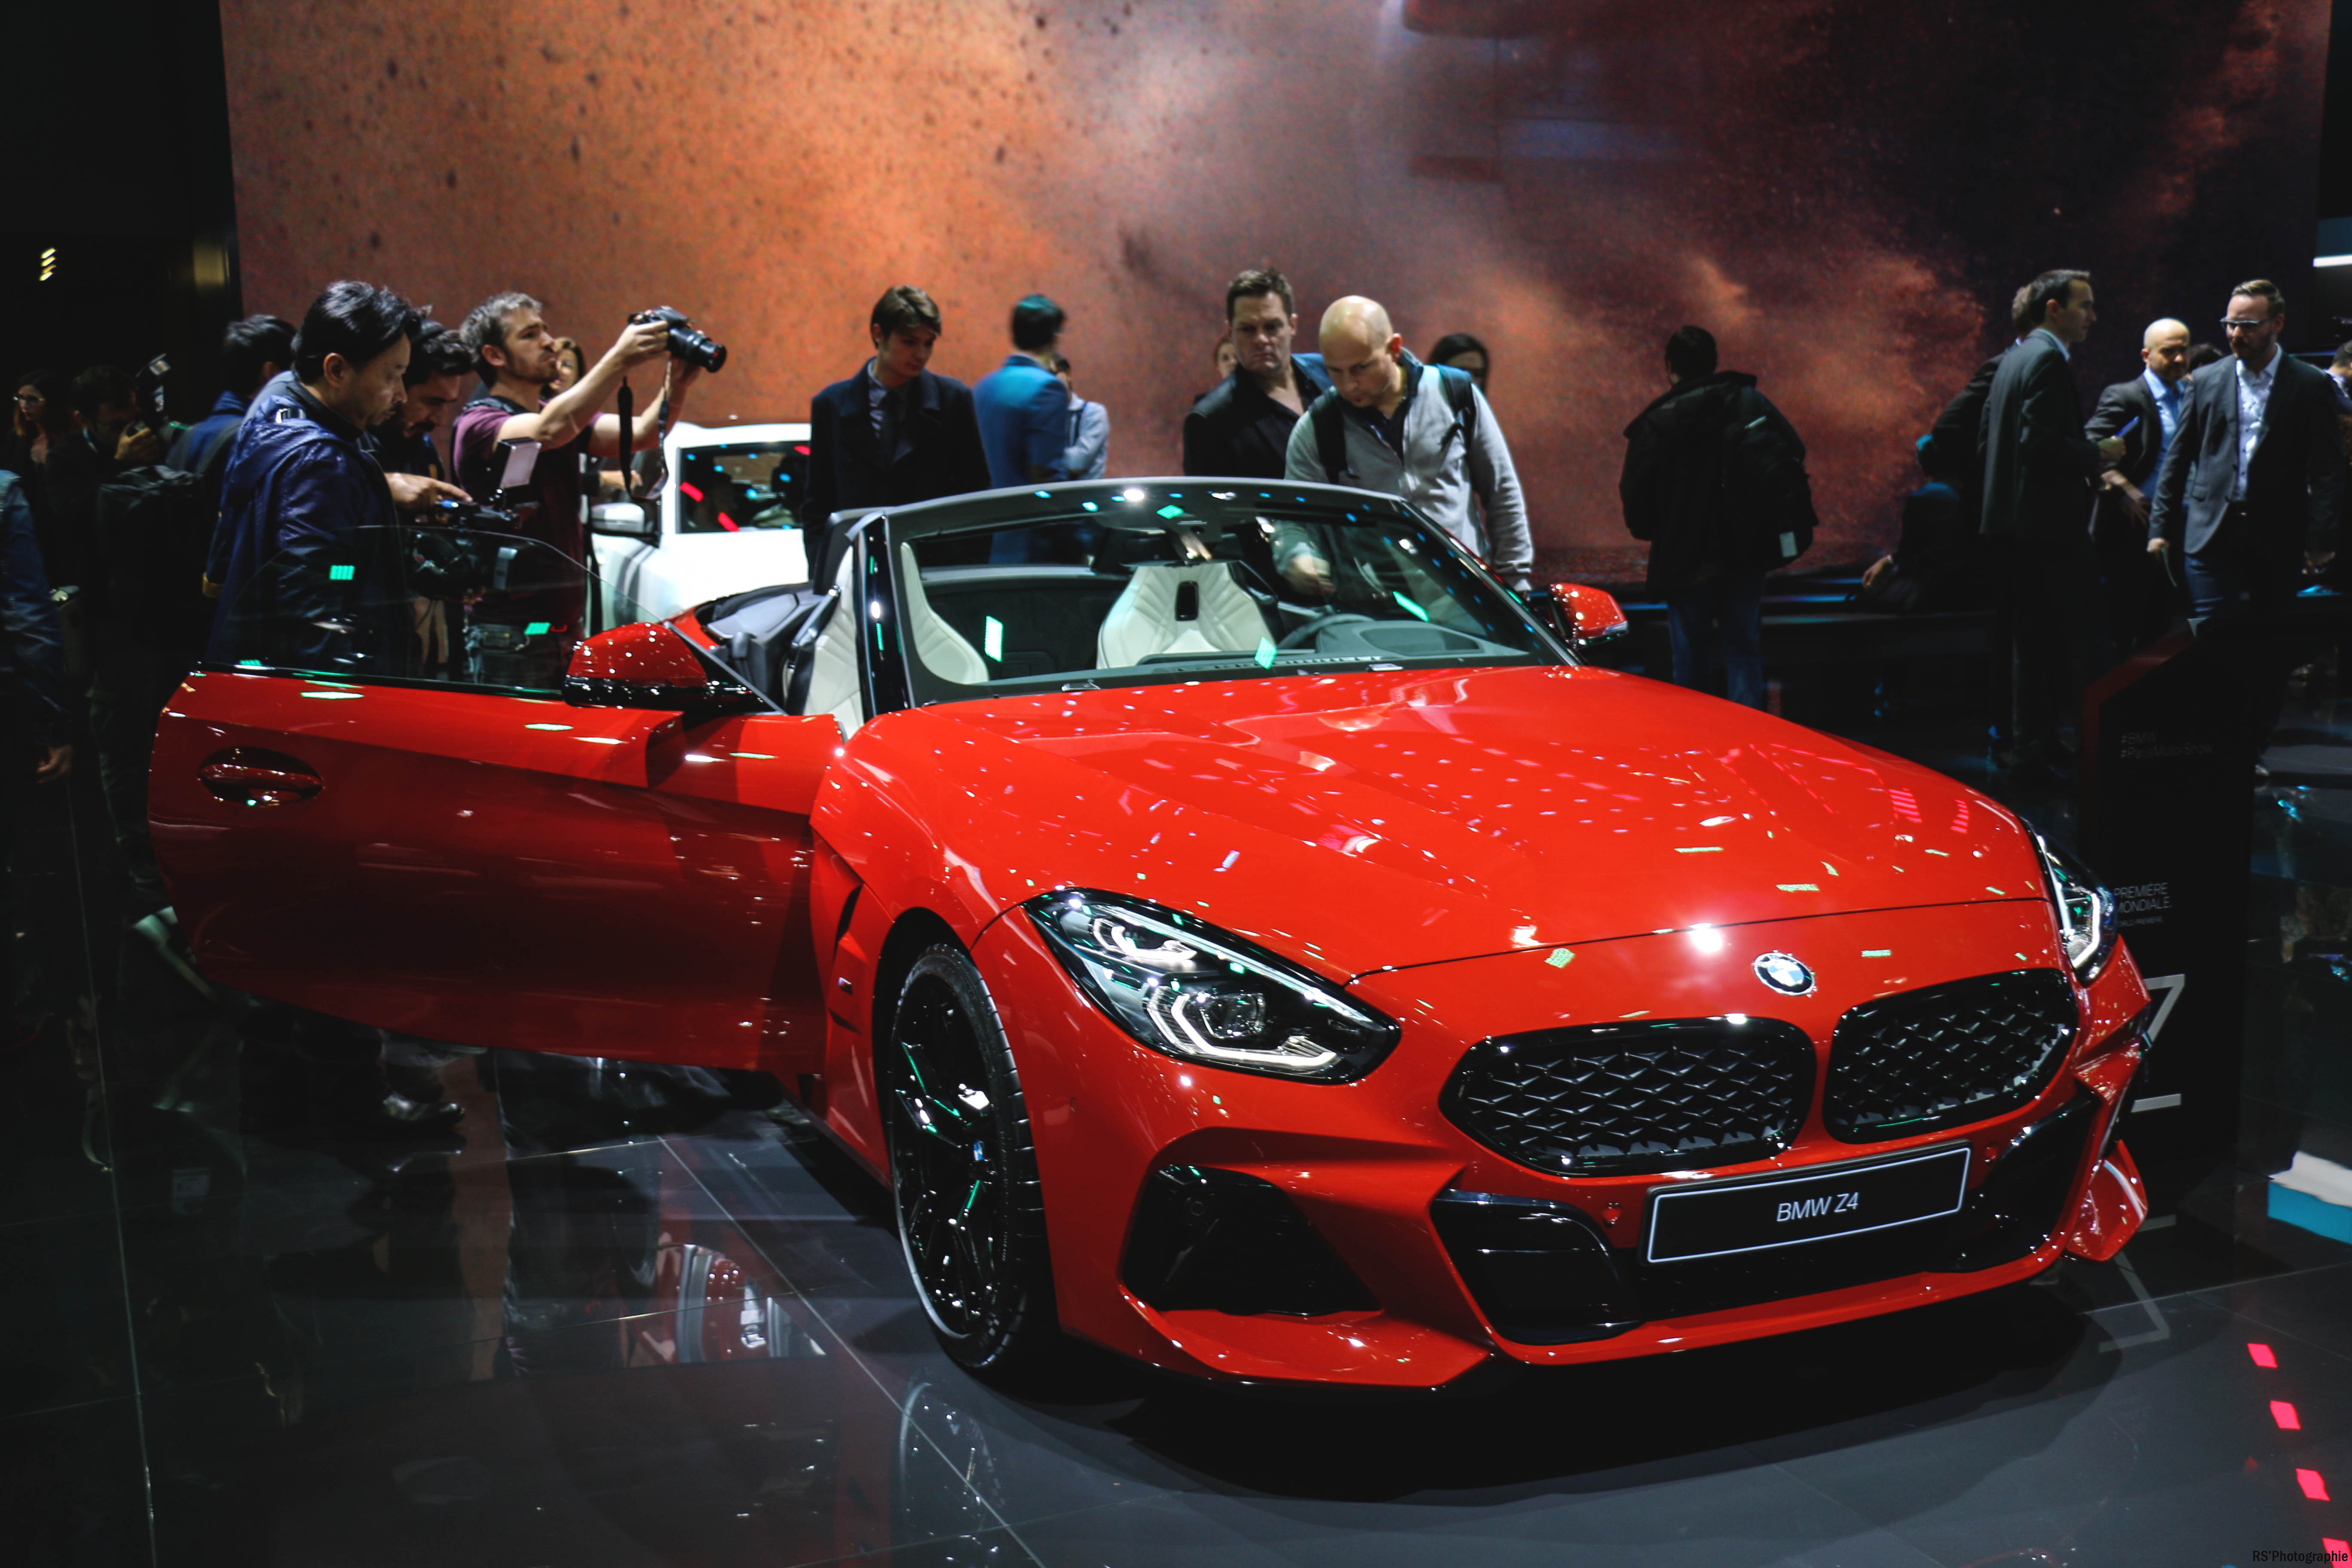 BMW Z4 - front - Paris Motor Show - 2018 - Mondial Auto - photo by Arnaud Demasier RS Photographie